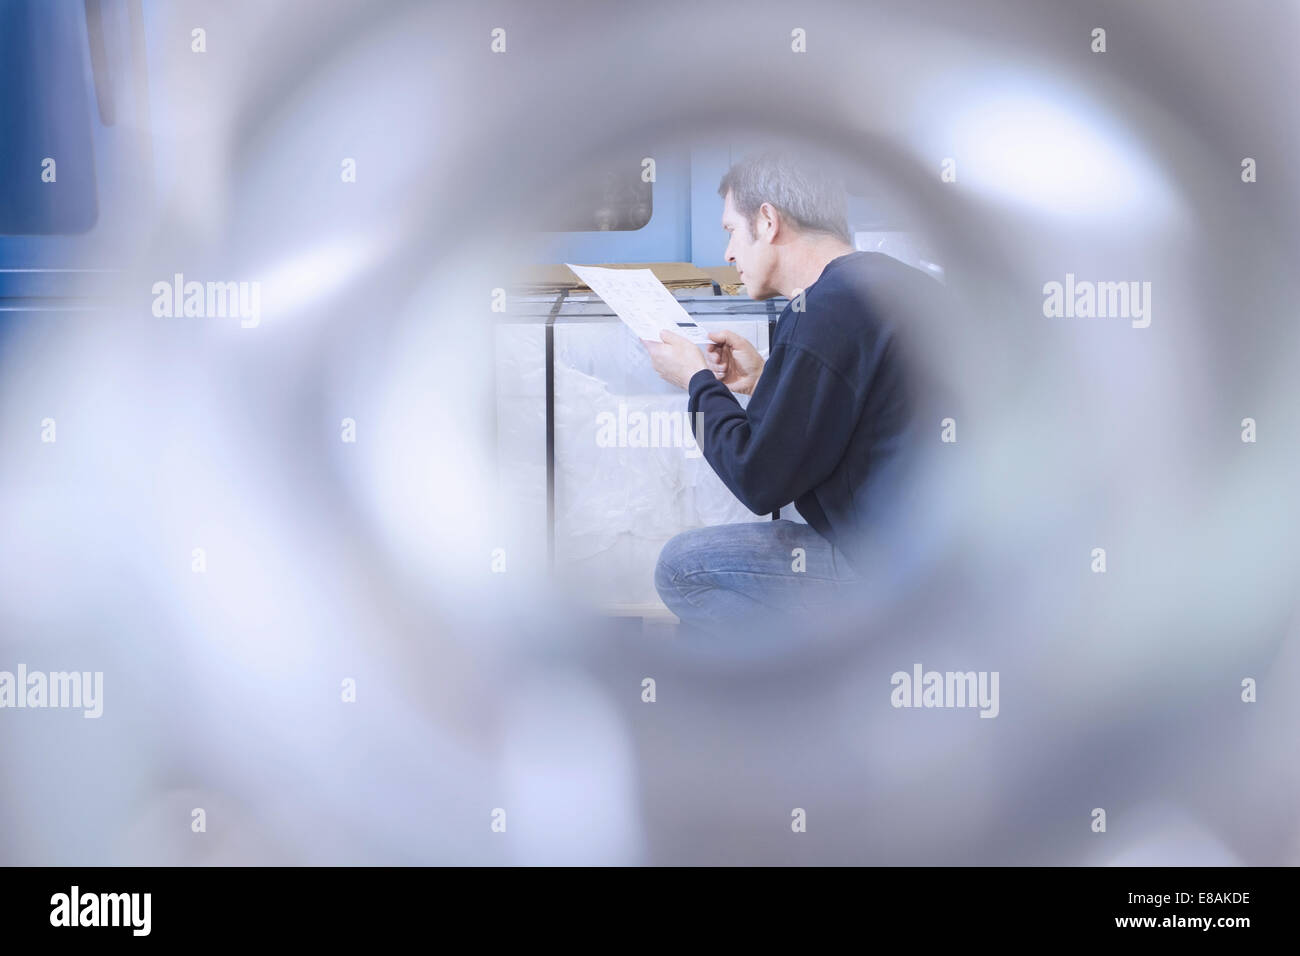 Engineer working in CNC precision engineering - Stock Image